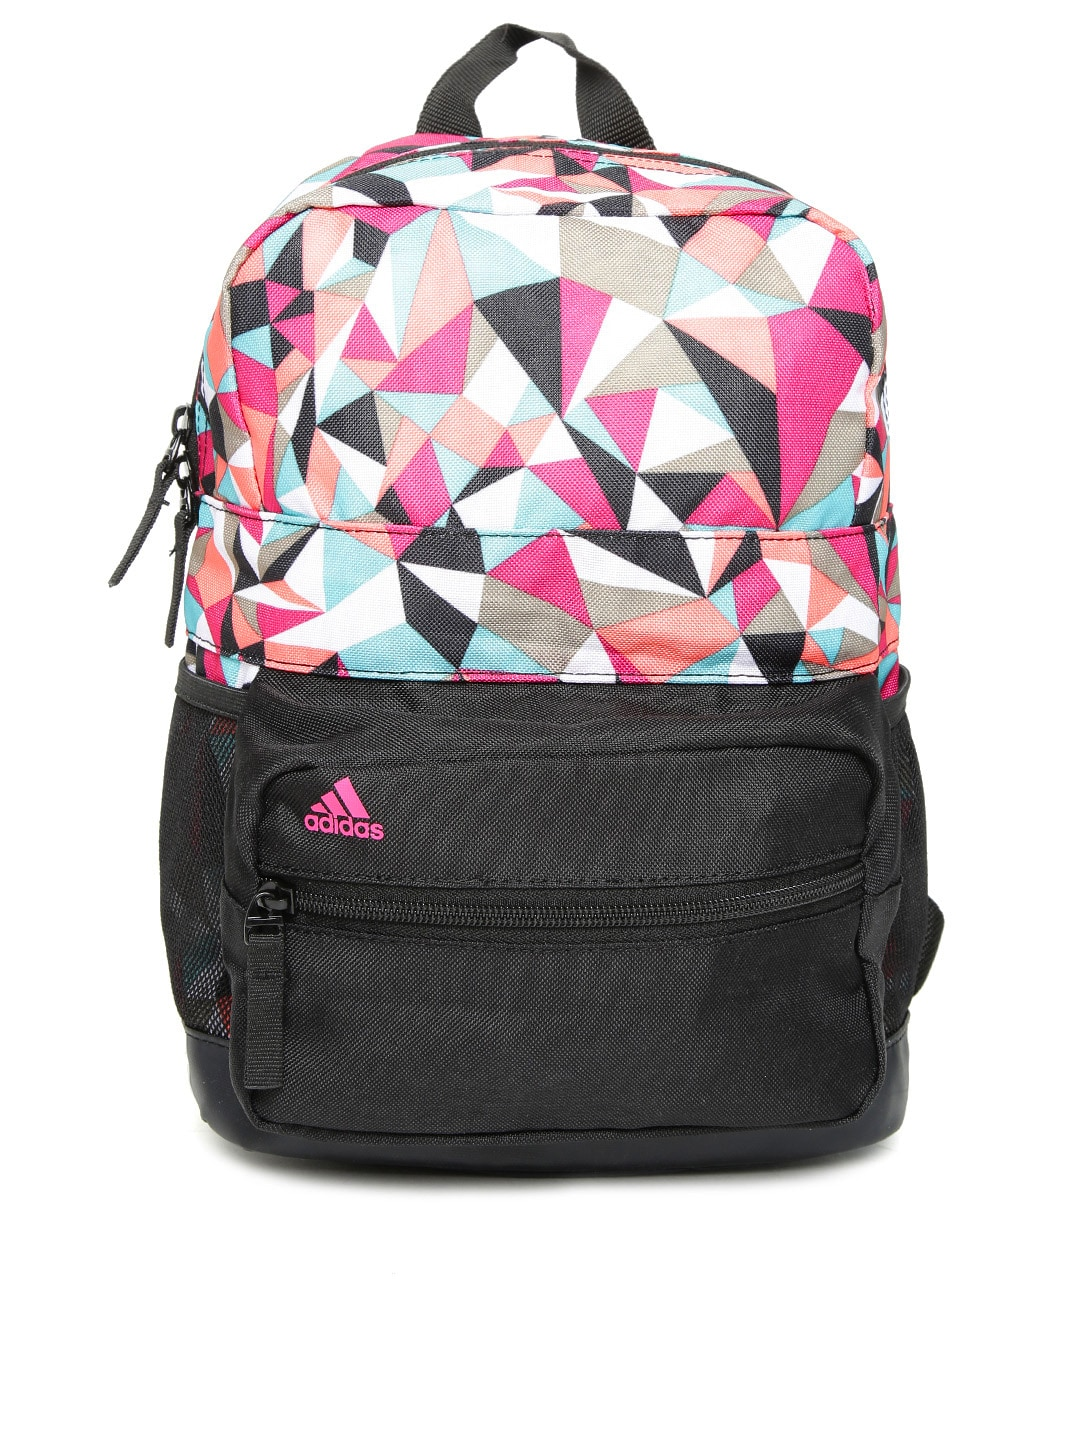 158a3edd811 Adidas ay3897 Kids Multicoloured Asbp Xs G1 Geometric Print Backpack- Price  in India